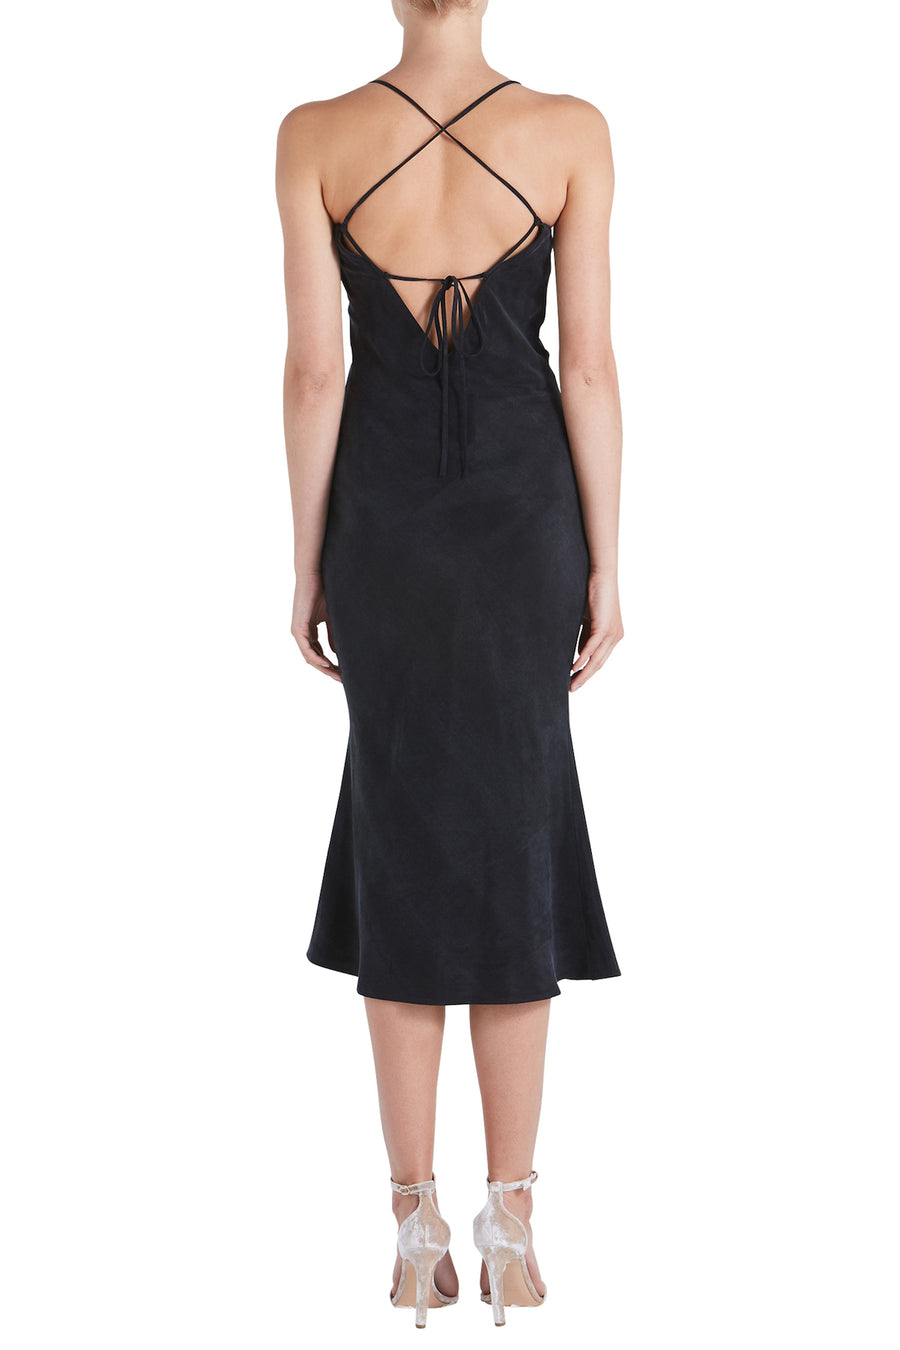 TIE BACK BIAS SLIP DRESS